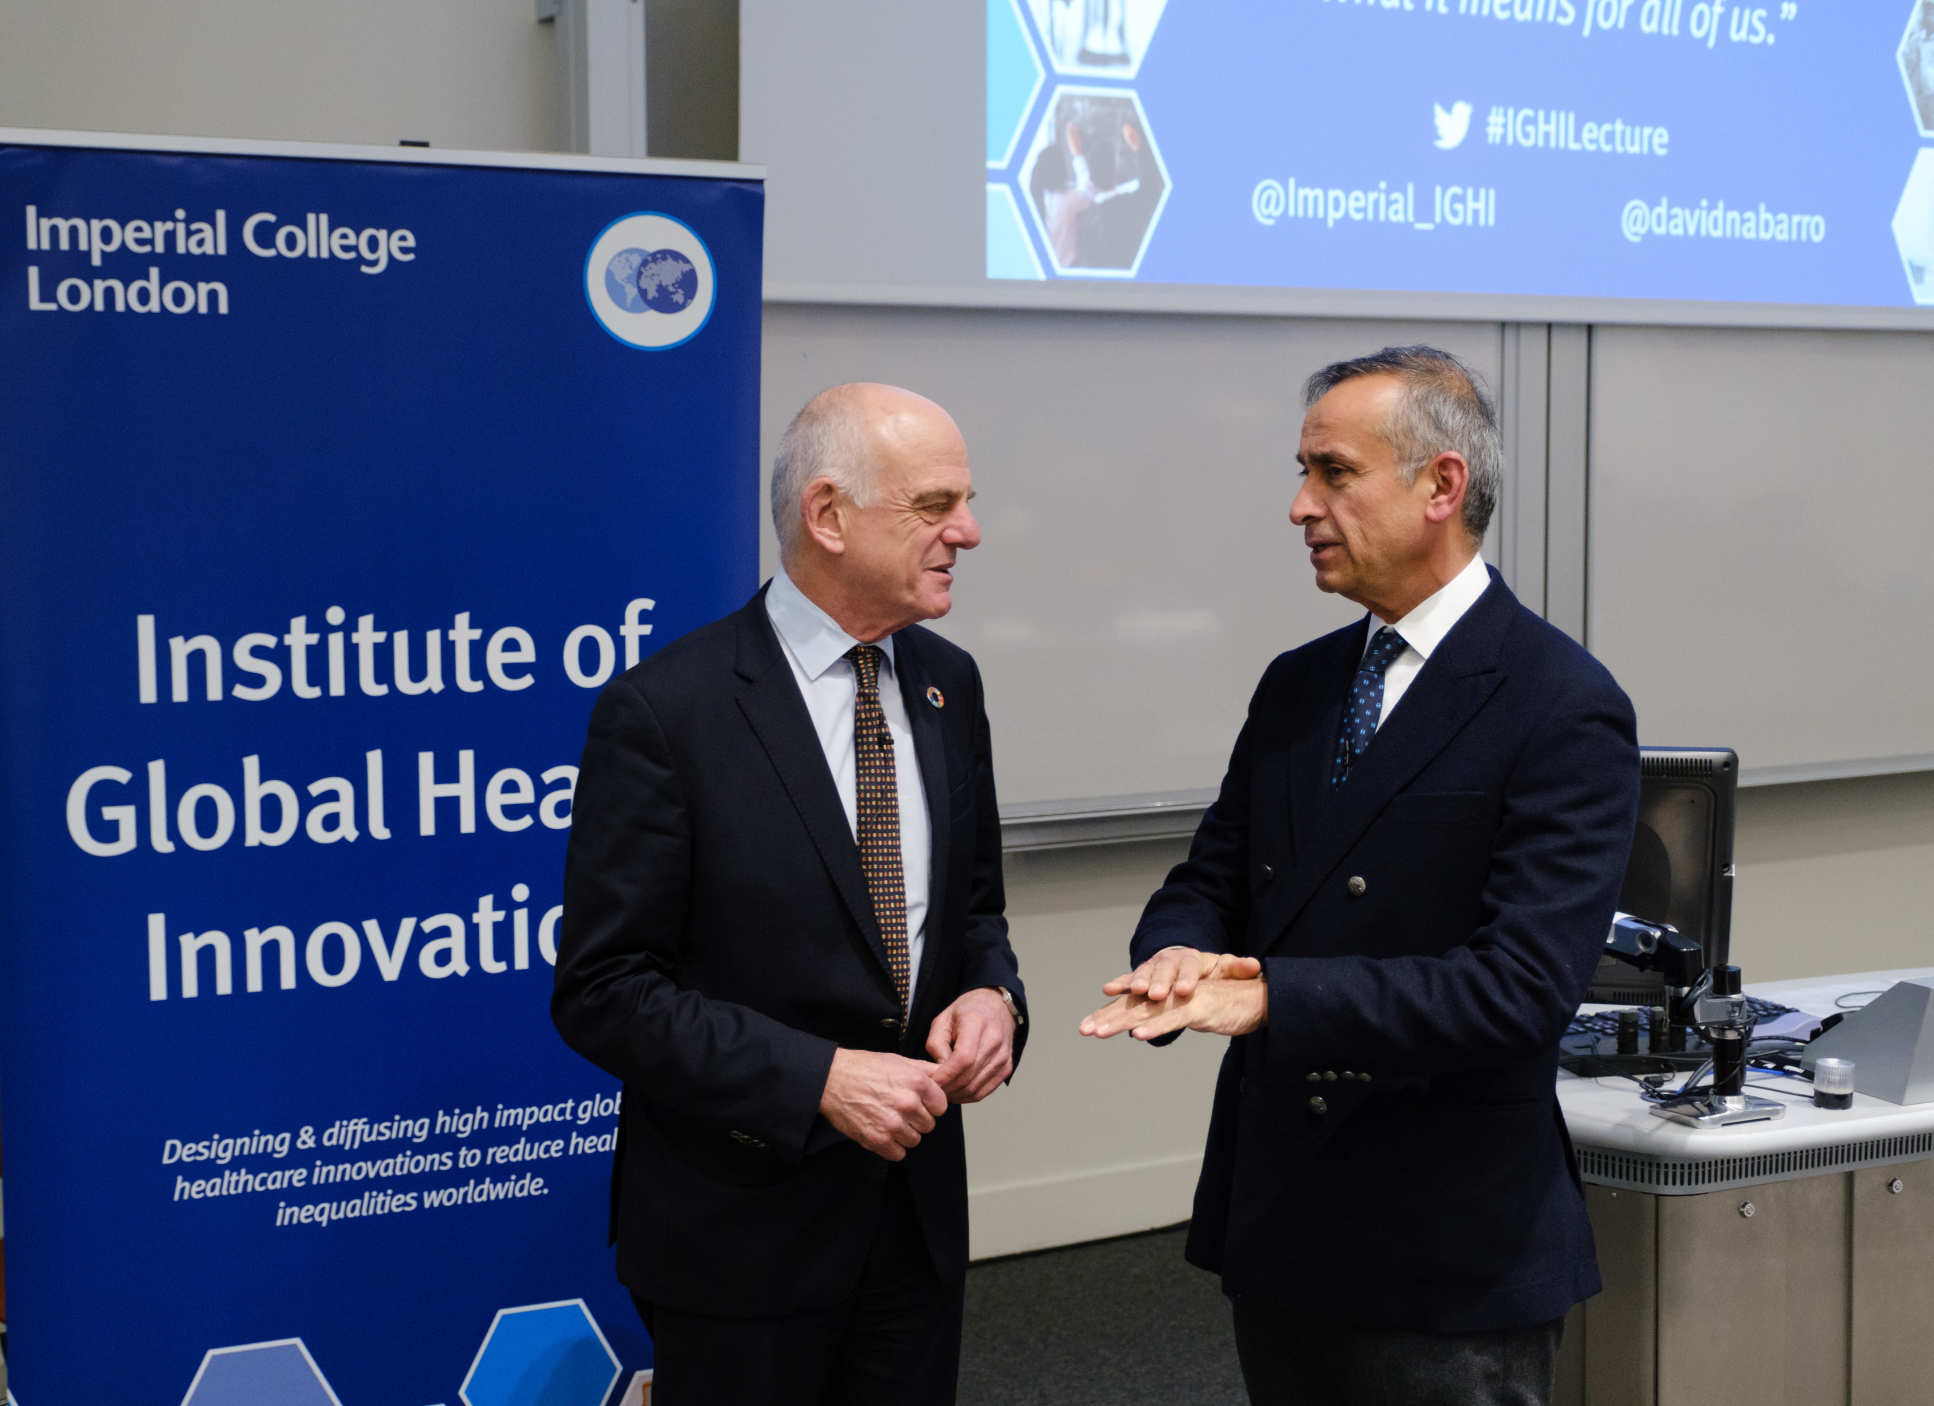 Dr Nabarro and Prof Darzi in discussion at a lecture